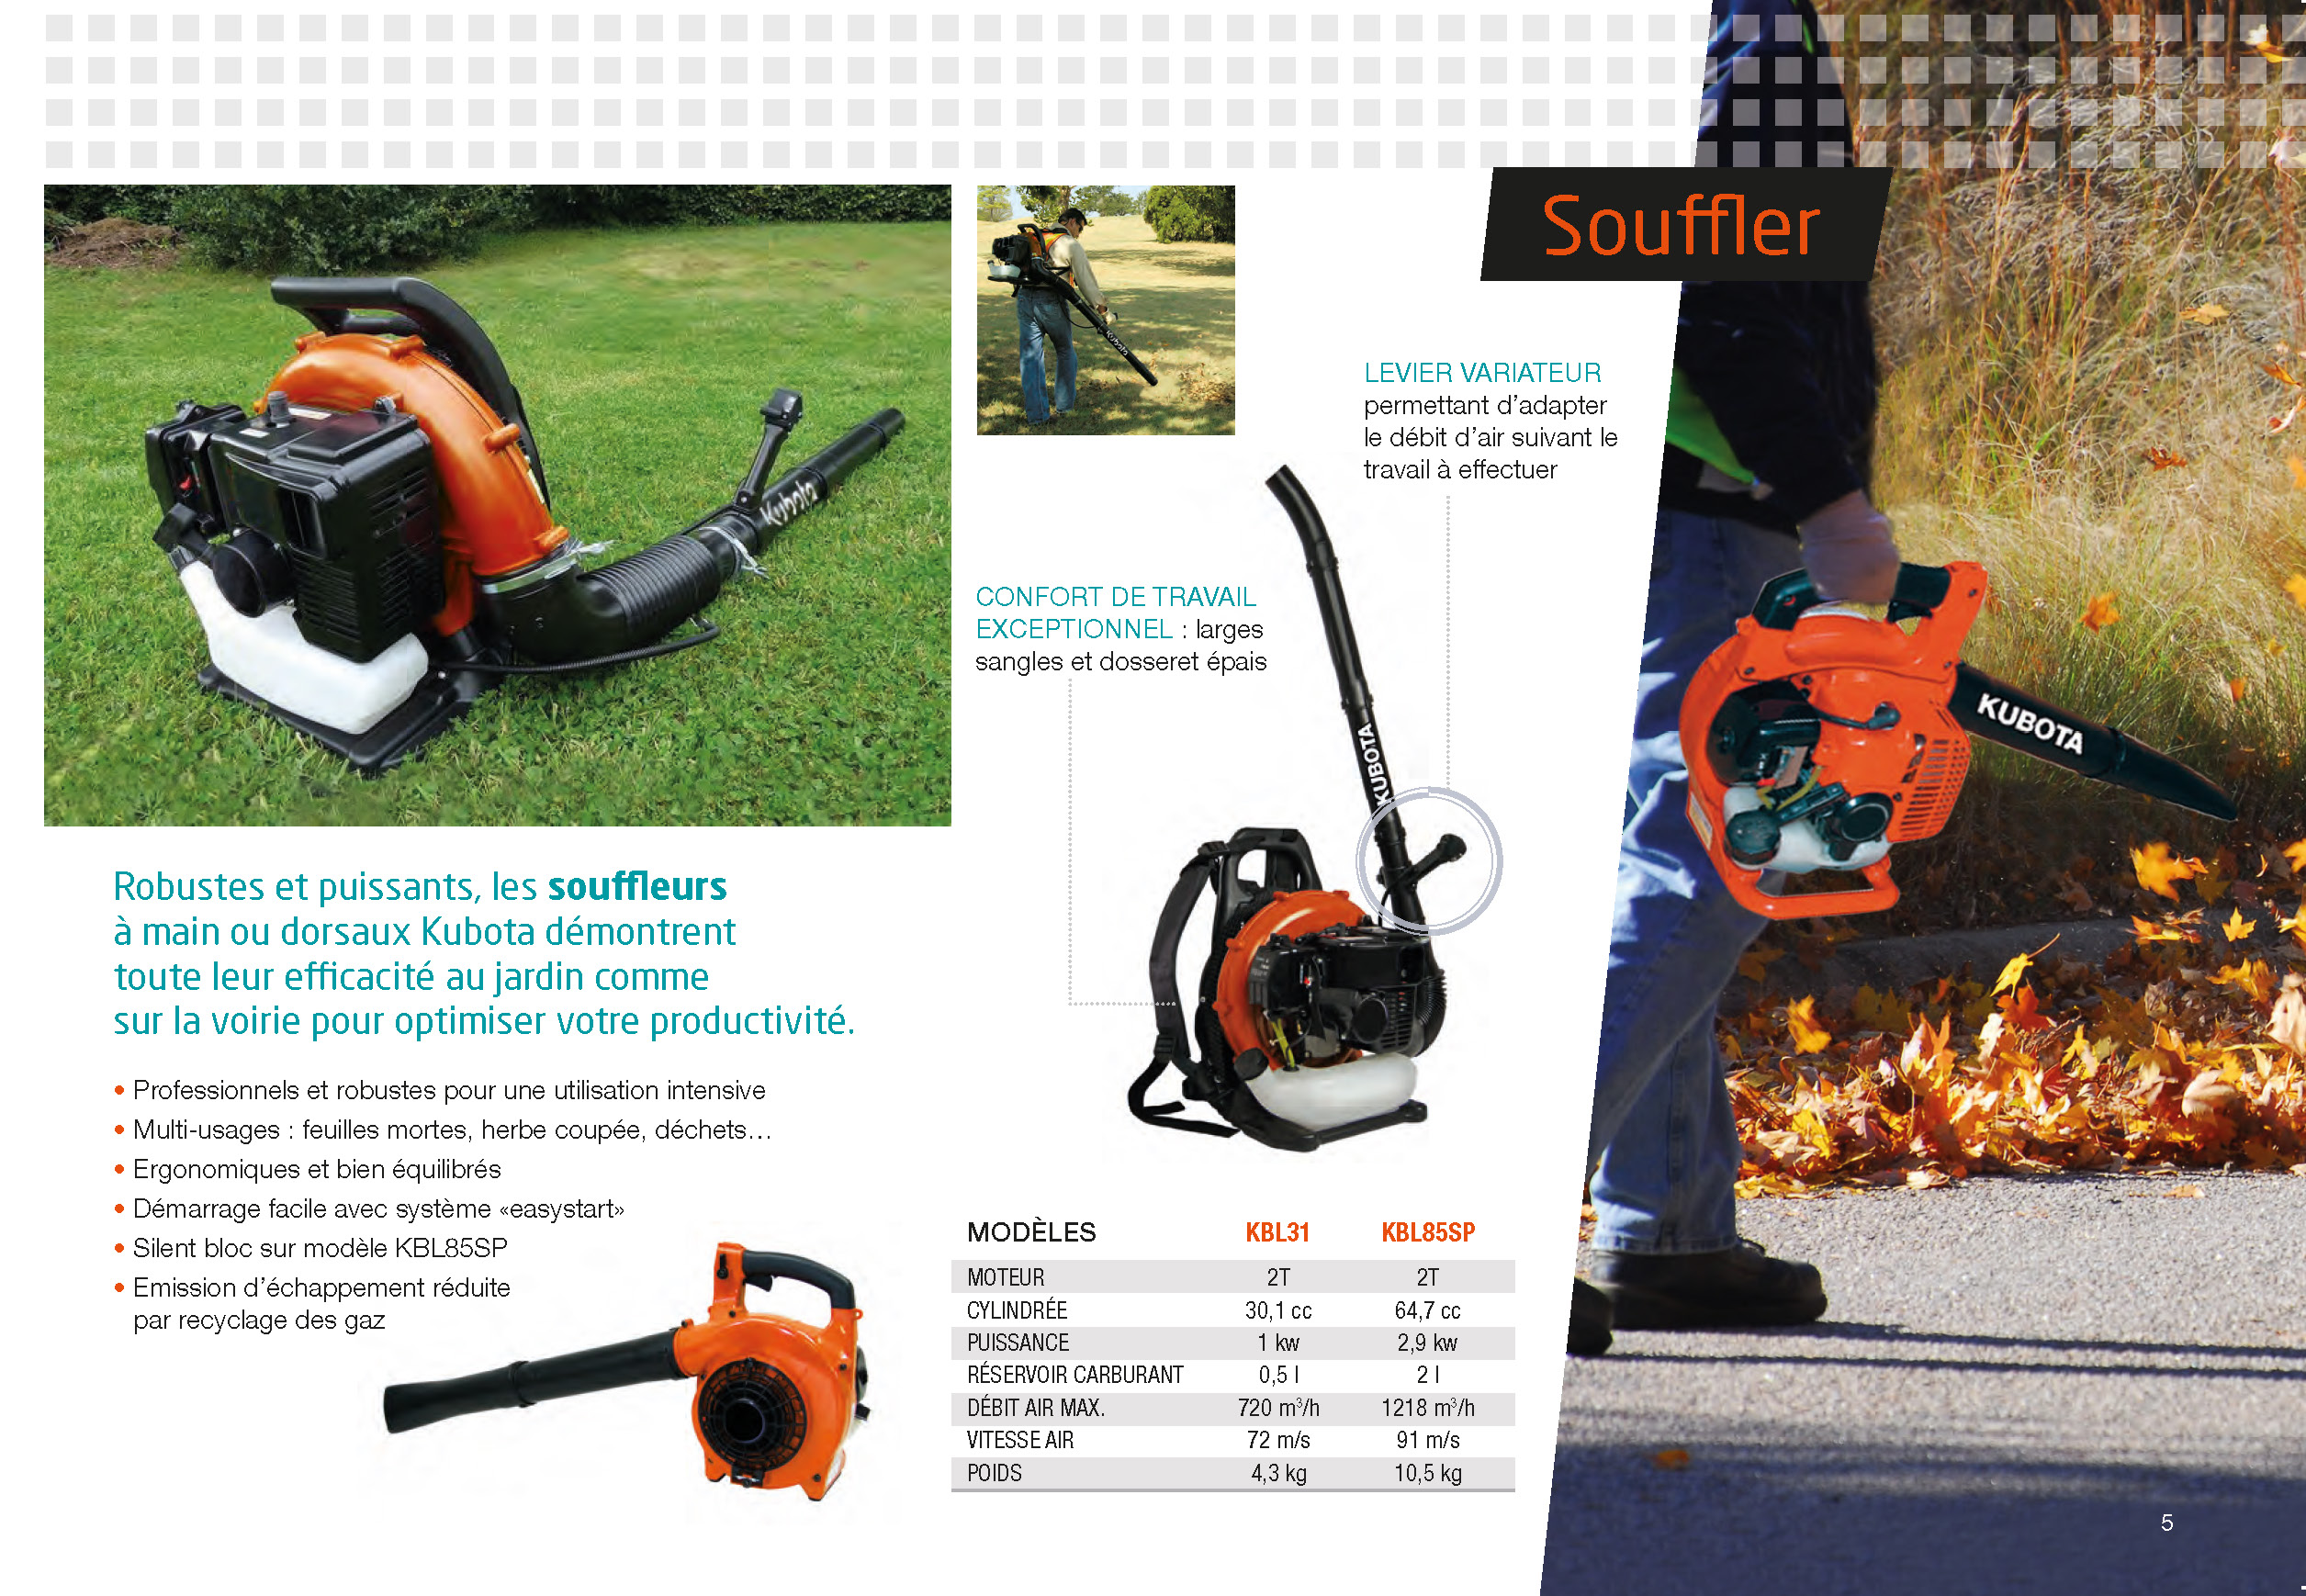 Catalogue-Outils-Gamme-thermique KUBOTA_Page_5